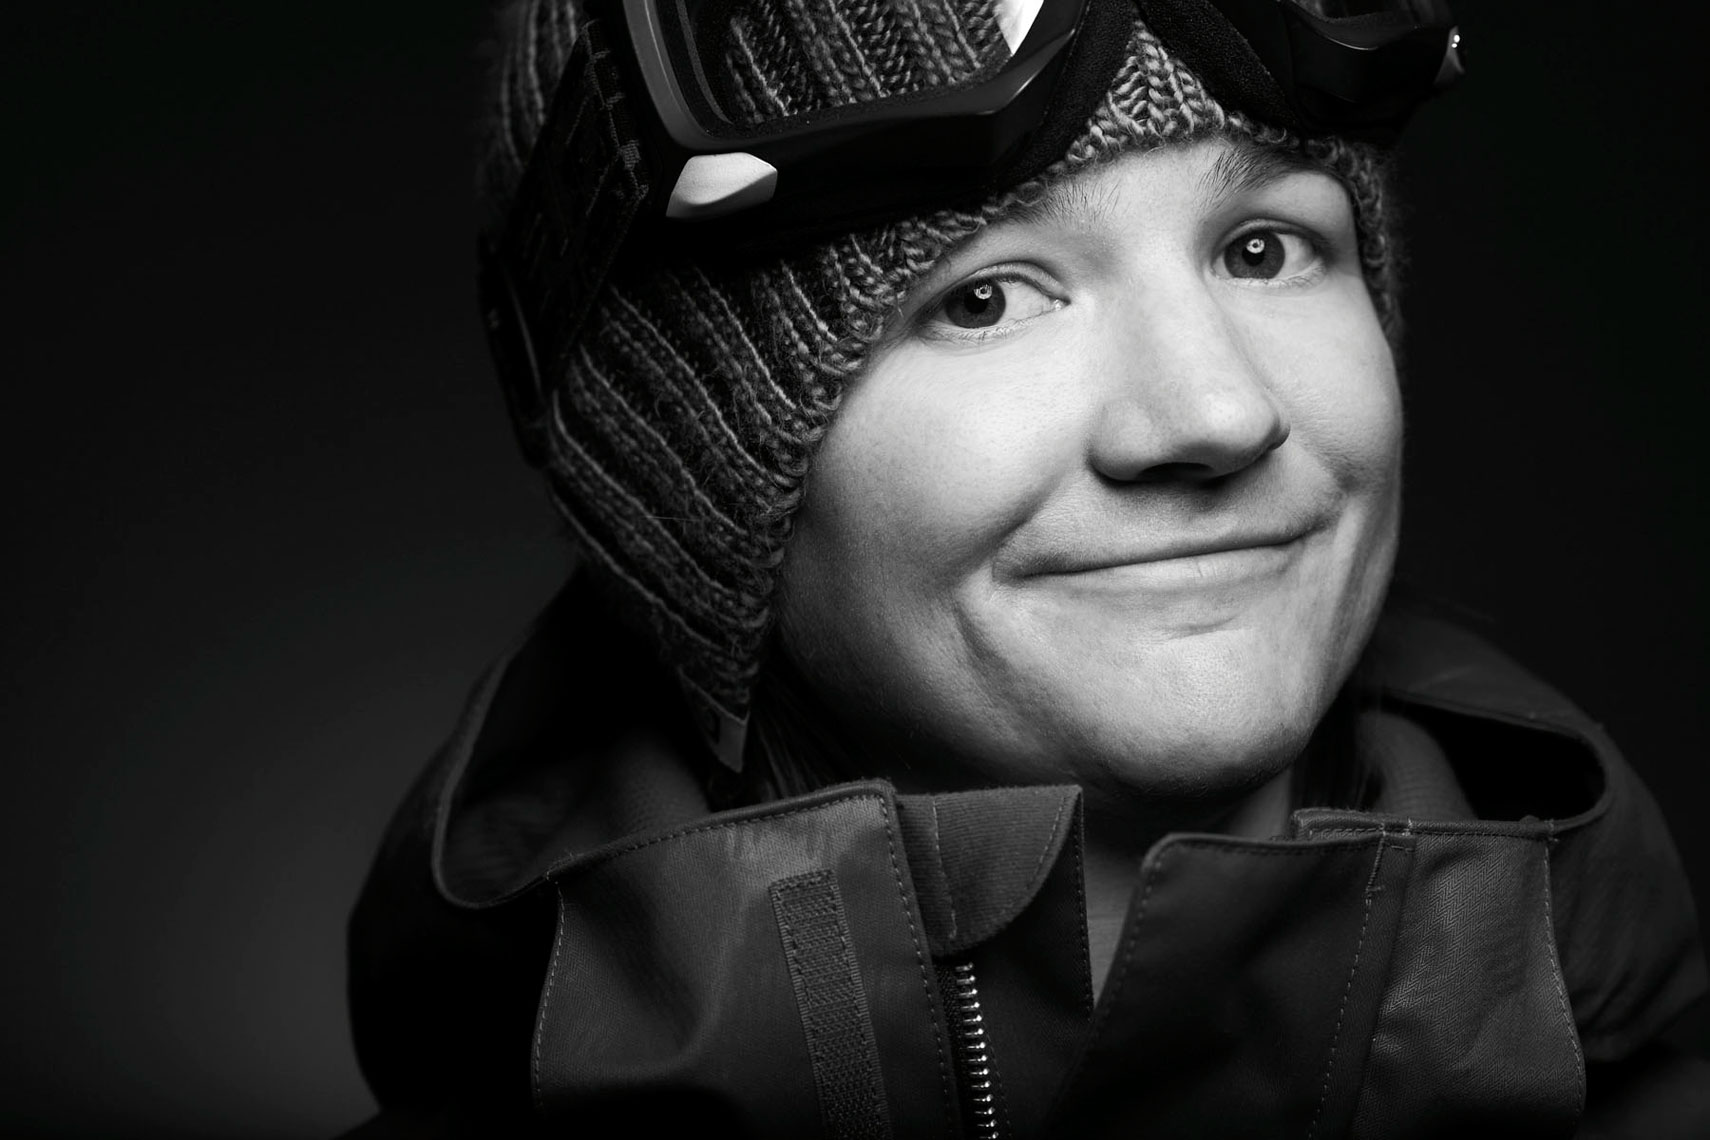 Kelly Clark US Halfpipe Snowboarder Photo by Monte Isom